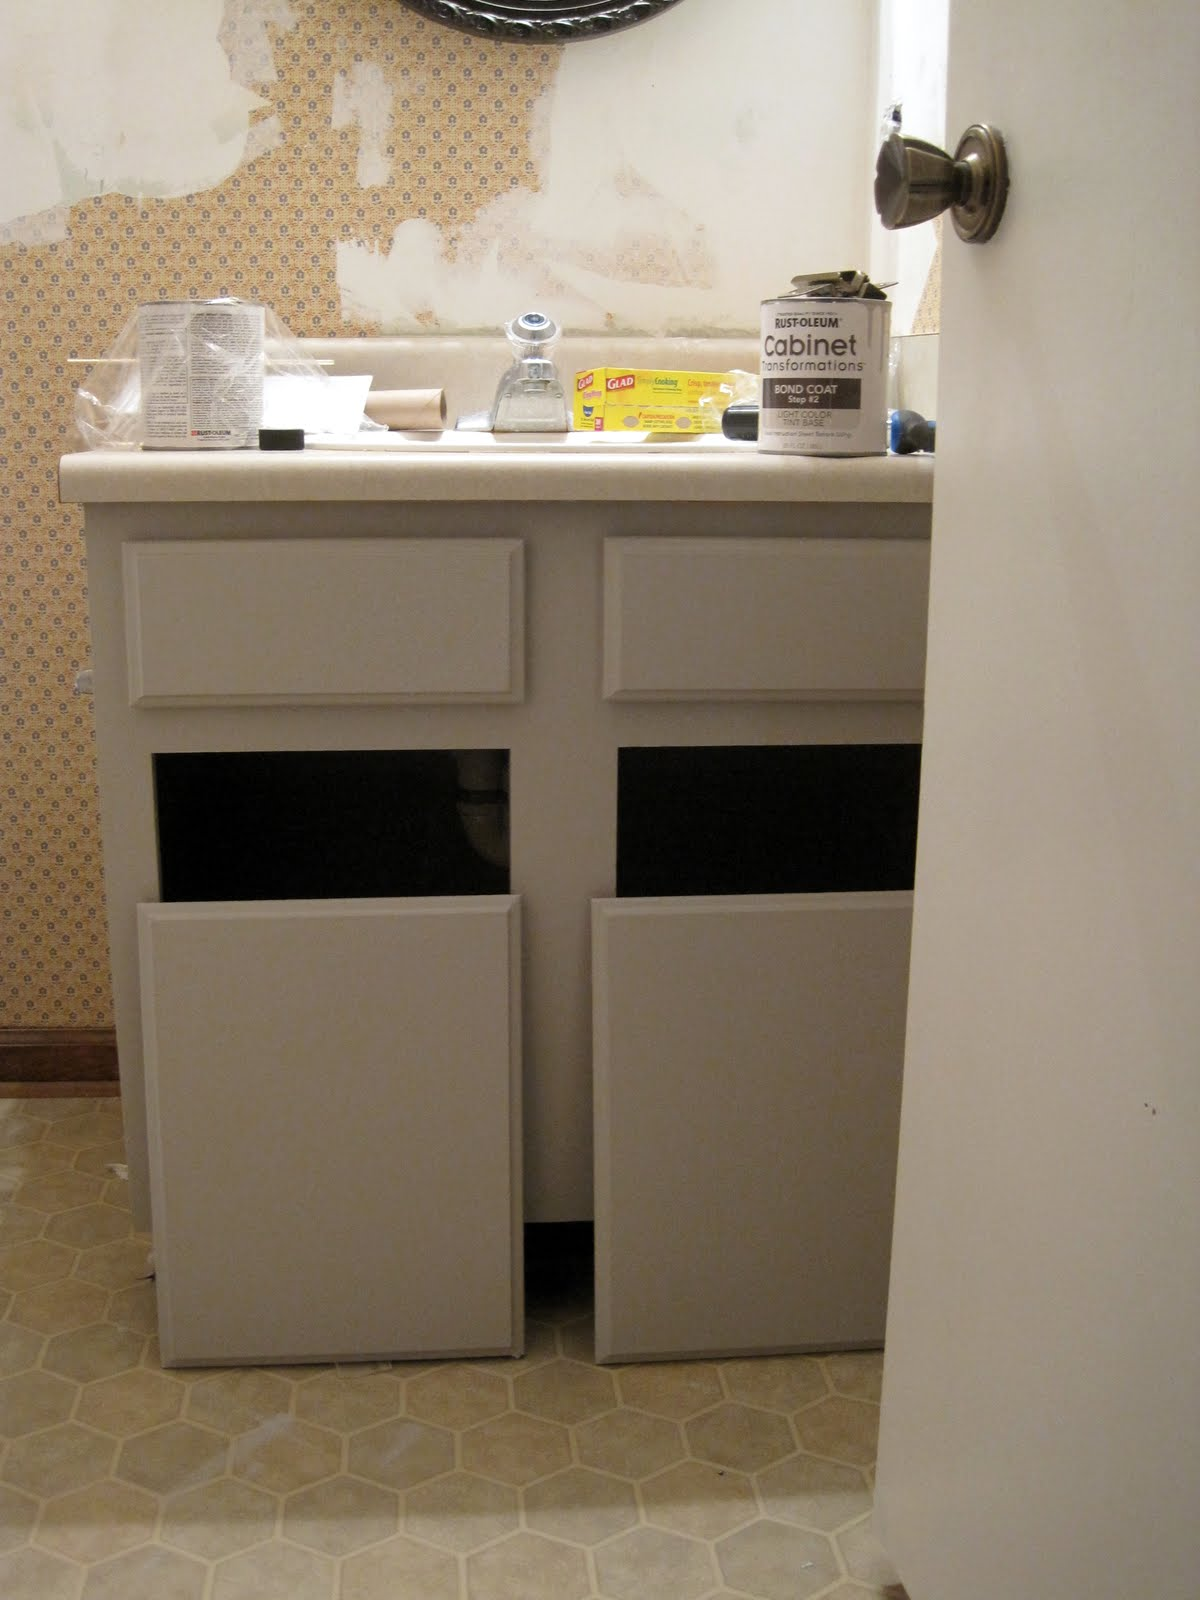 Bathroom Changes with Rustoleum Cabinet Transformations